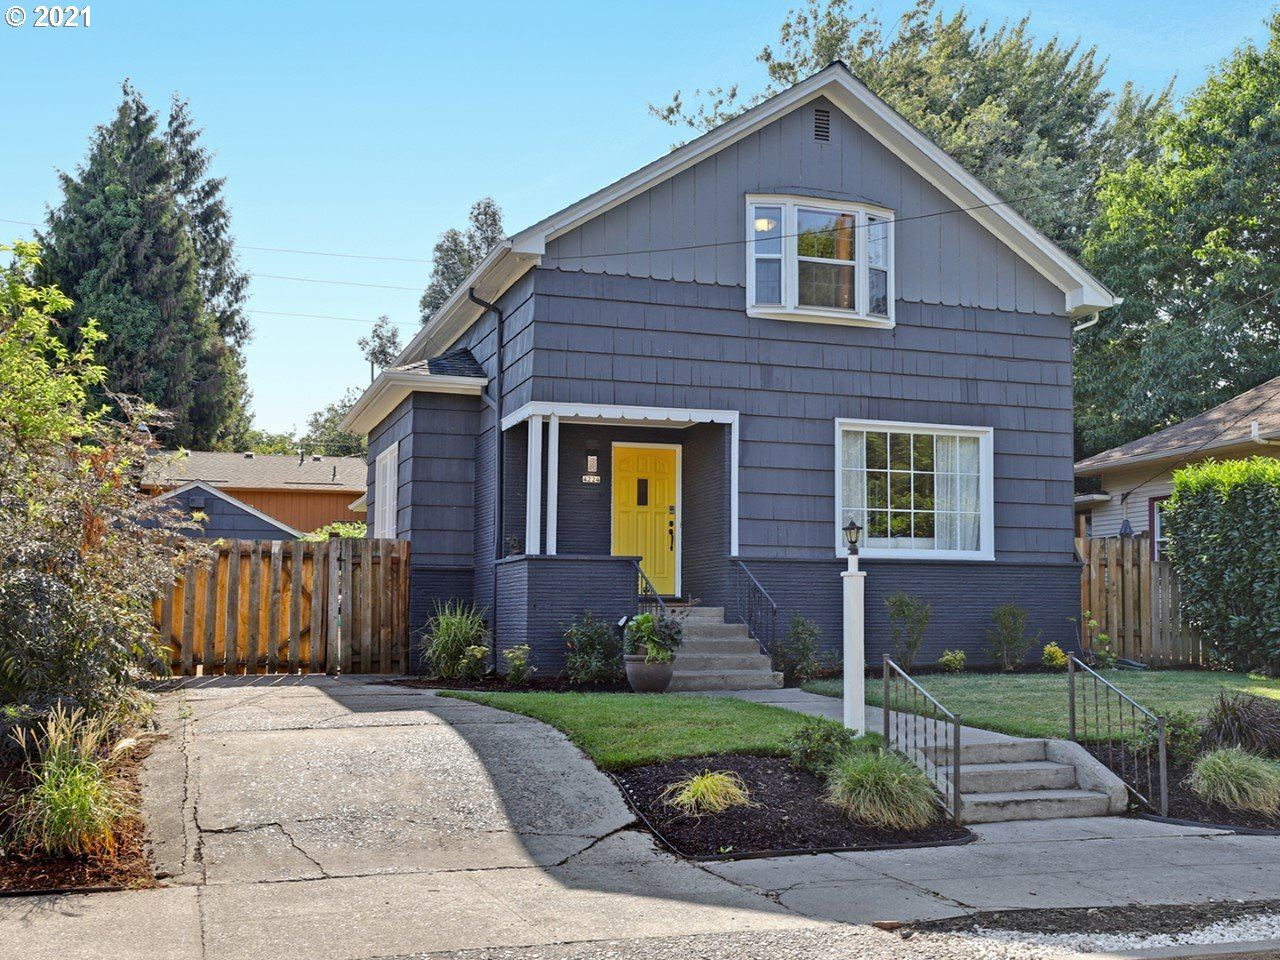 4224 SE 29TH AVE, Portland, OR 97202 - MLS#: 21688393